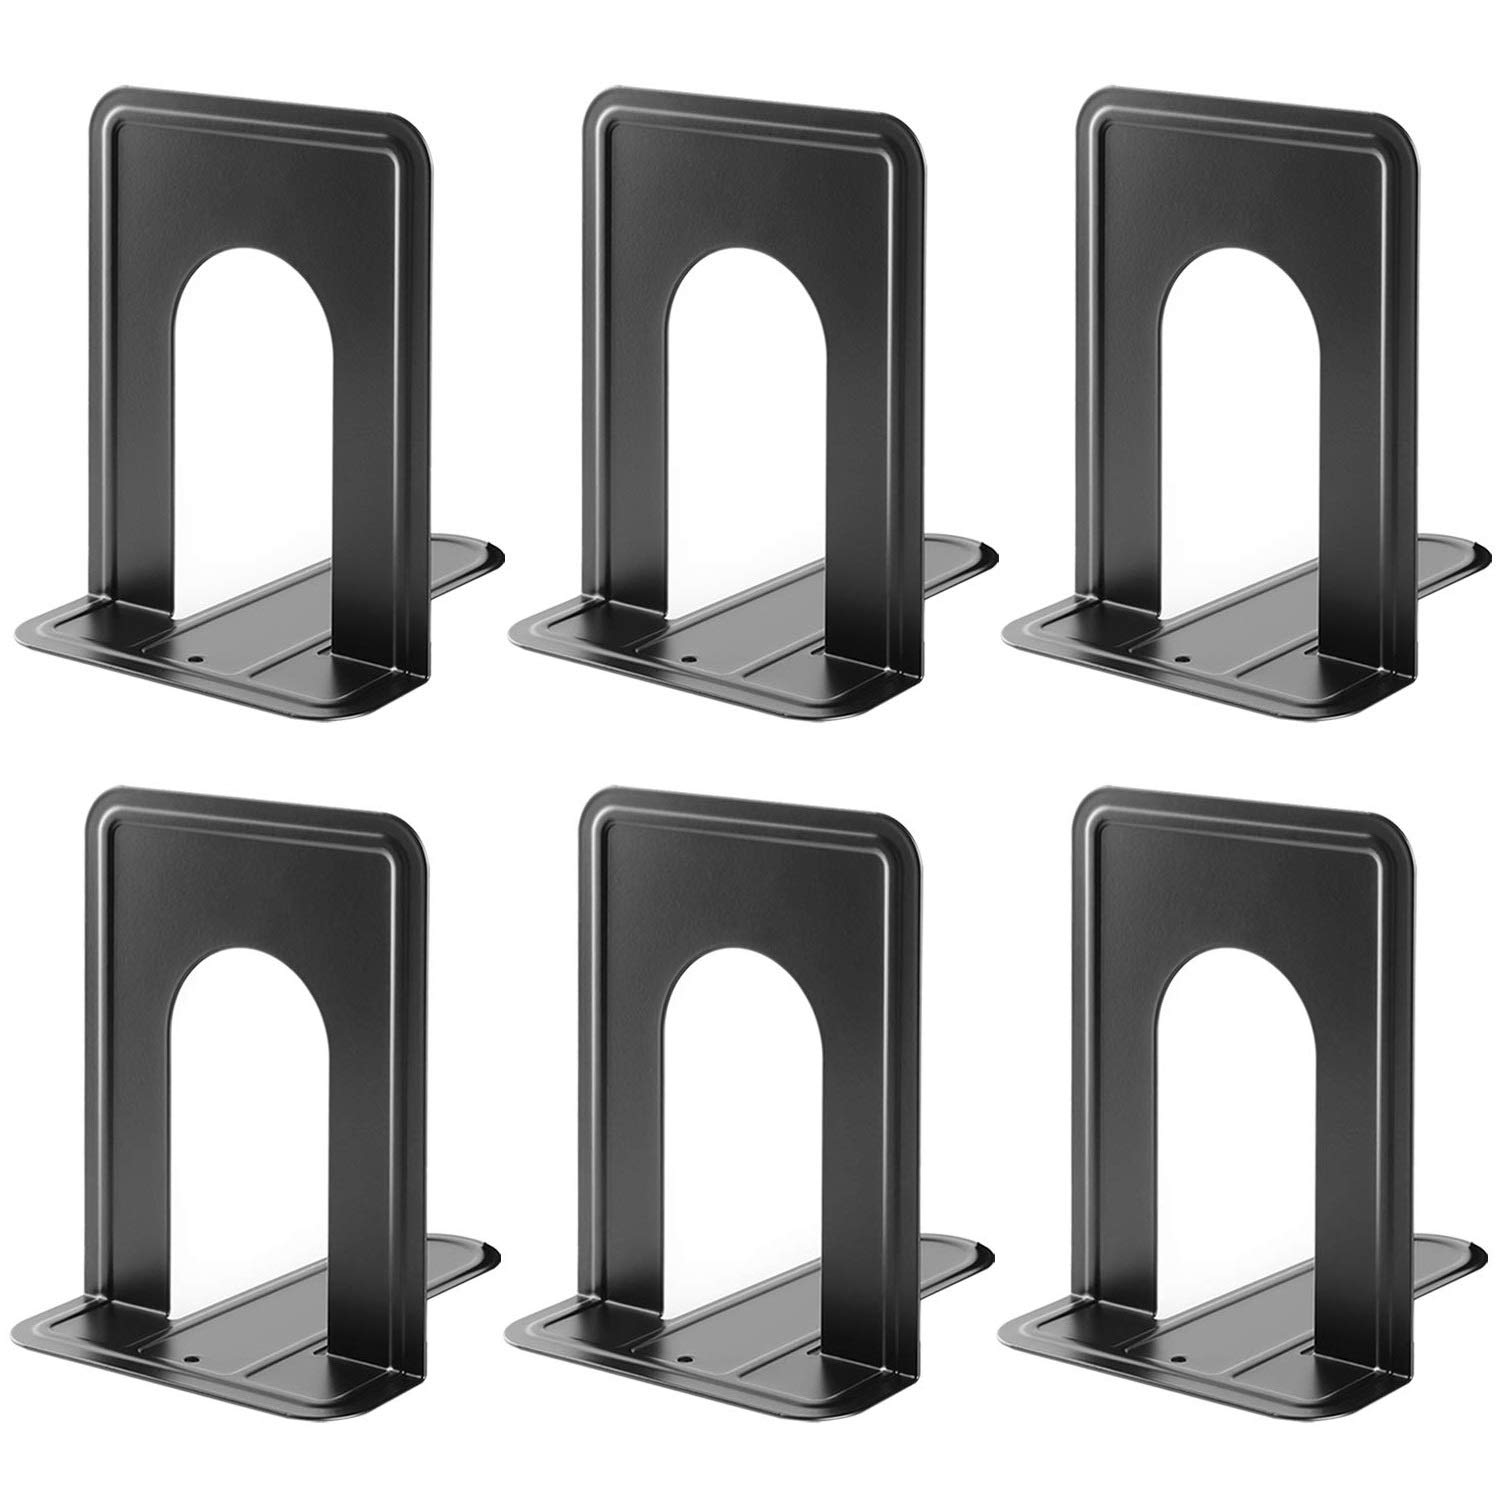 Alexbasic Bookends Supports Metal Book Ends Non-skid Heavy Duty Bookends  For Heavy Books Shelves Library Classroom School Office, 669 X 49 X 43  In,